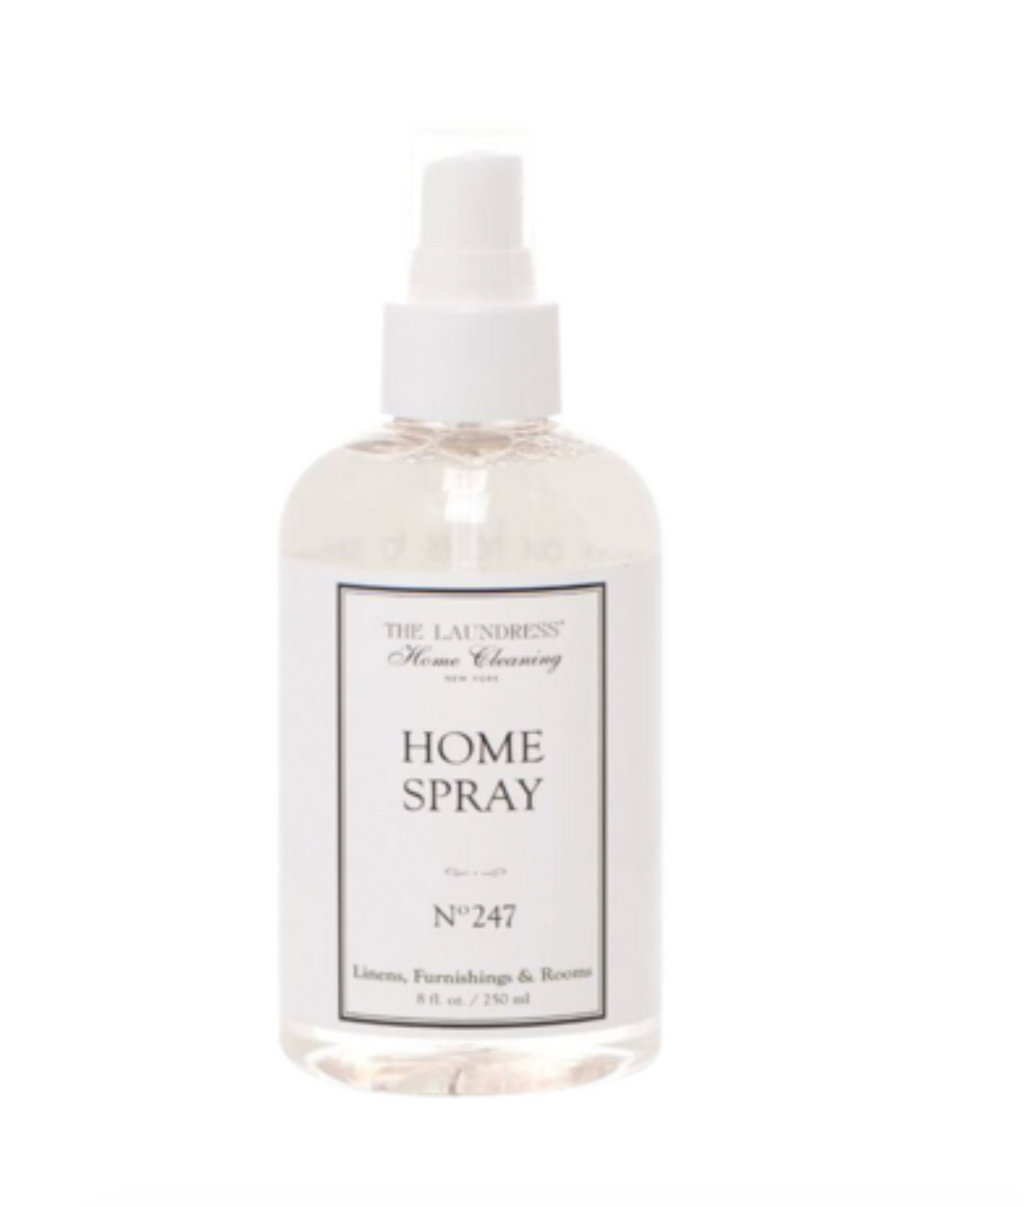 Home Spray 8 fl oz